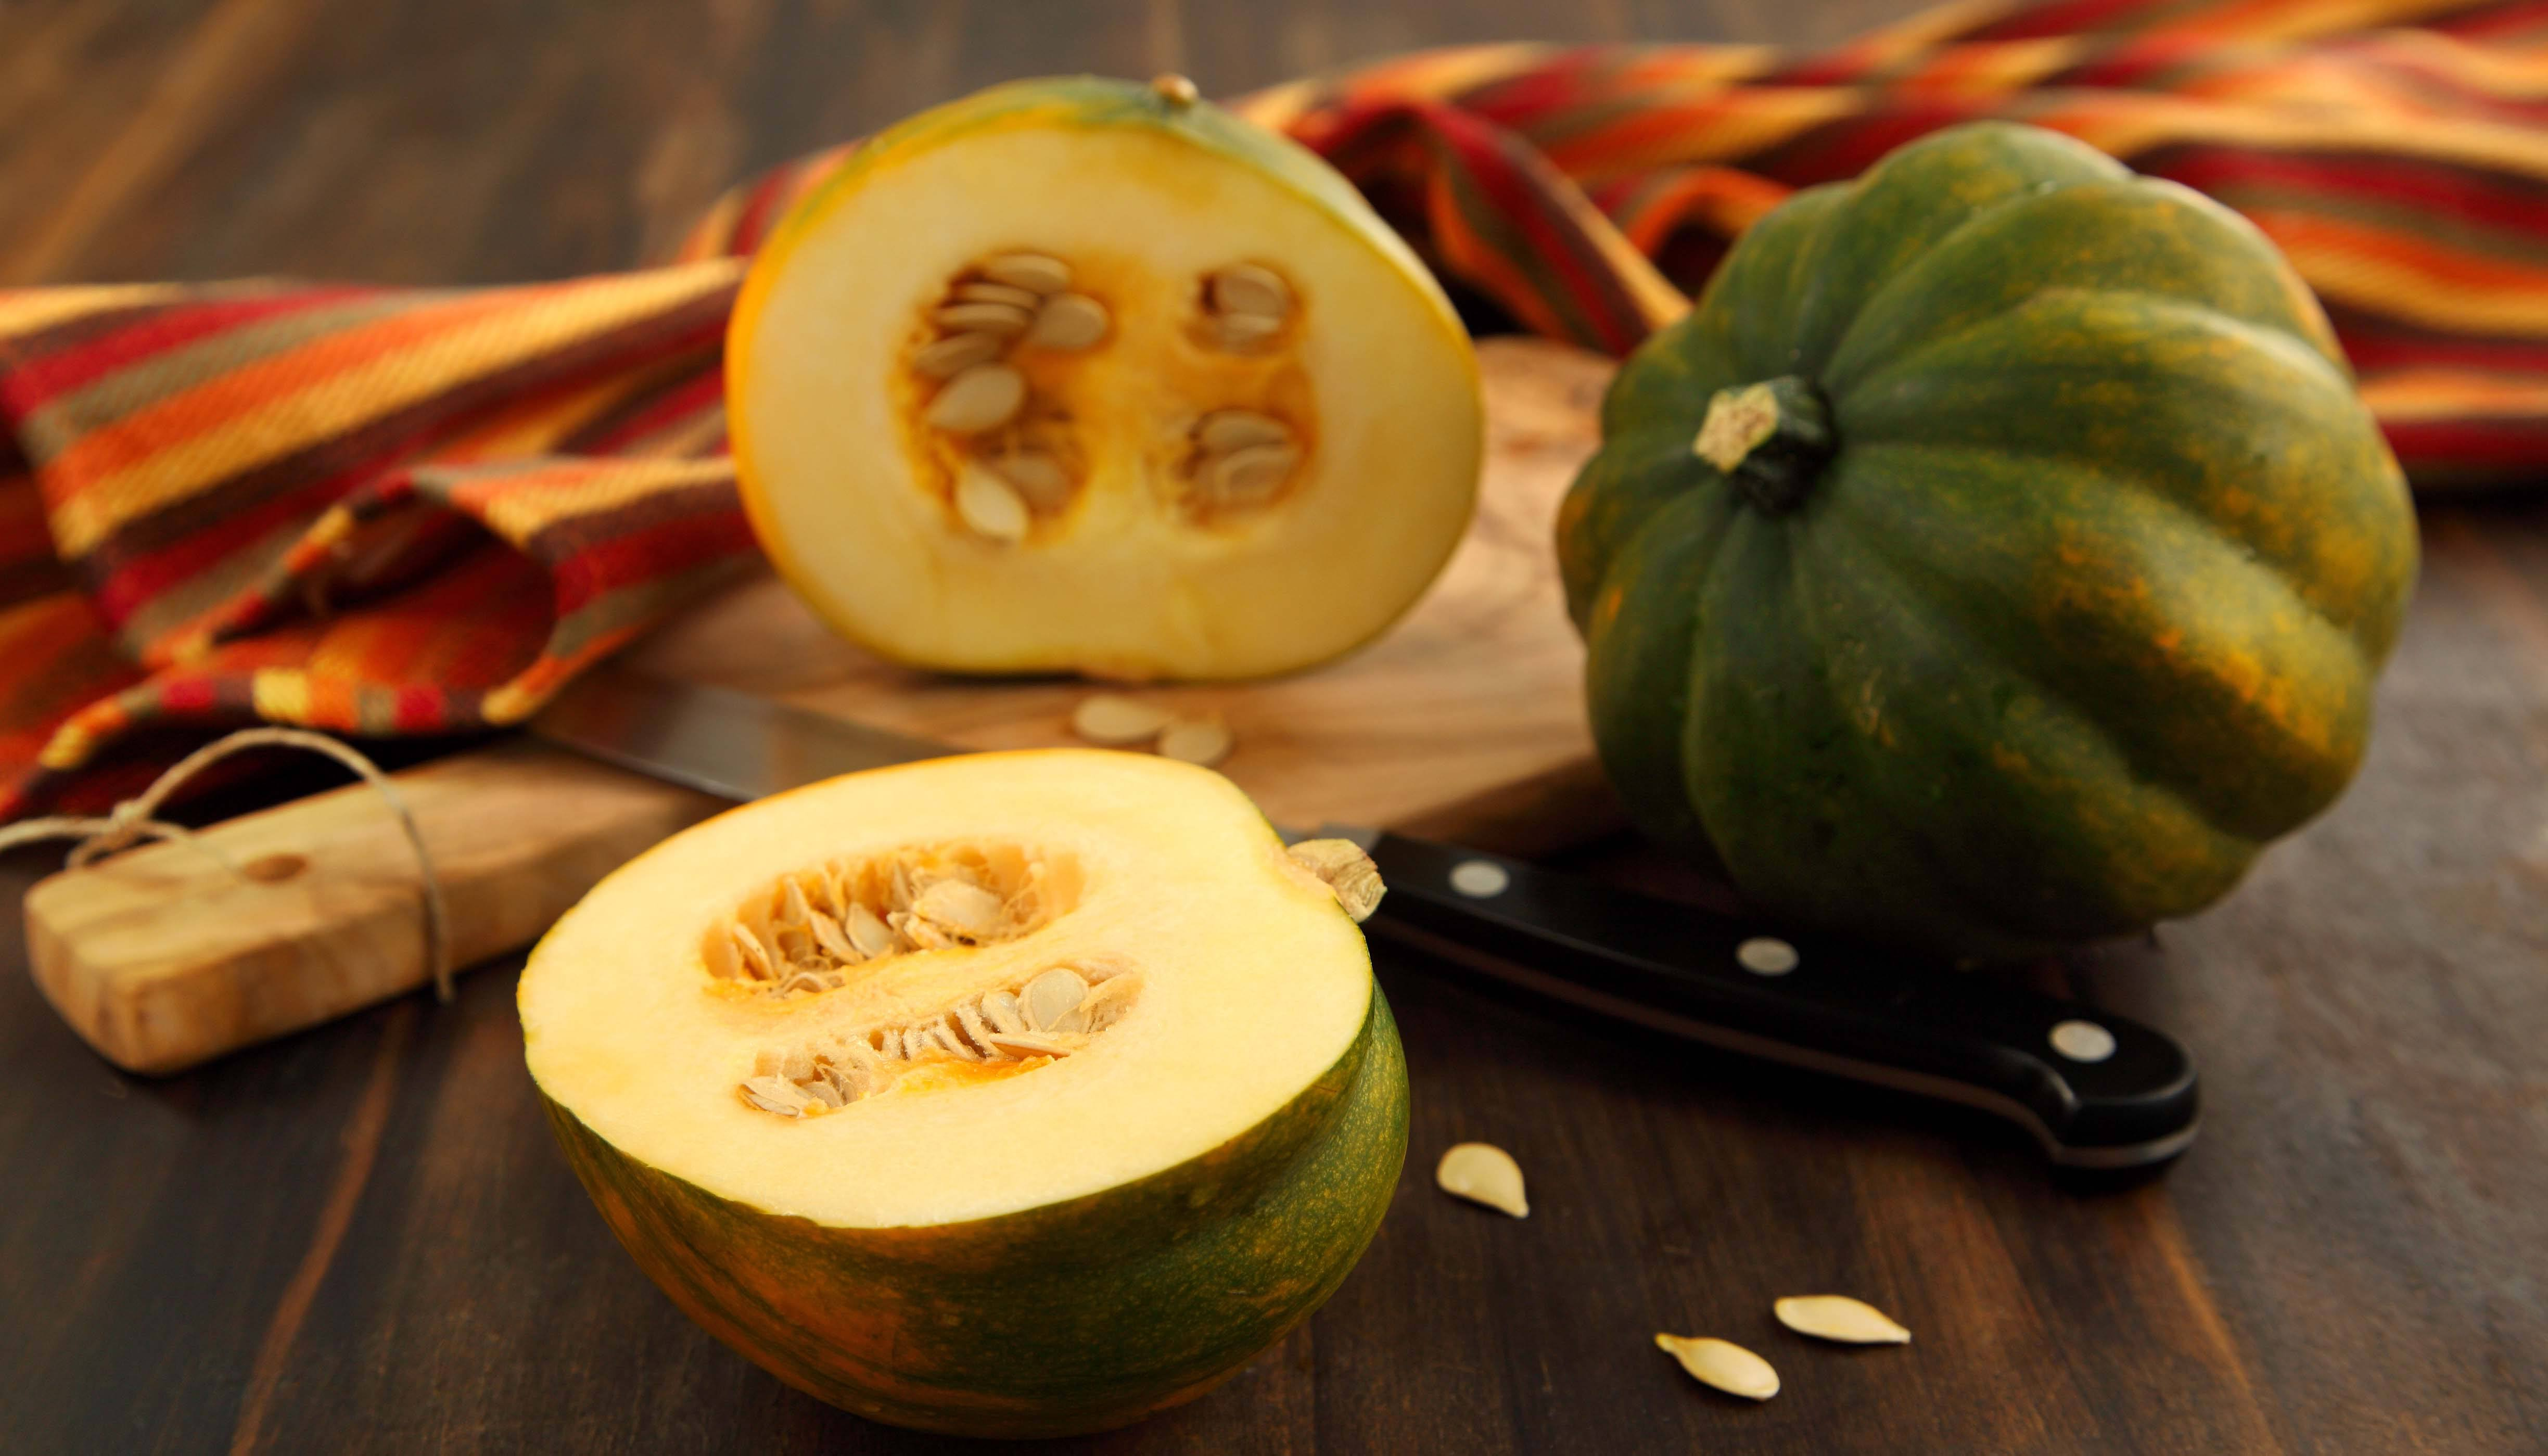 Recipe: Acorn Squash with Apples